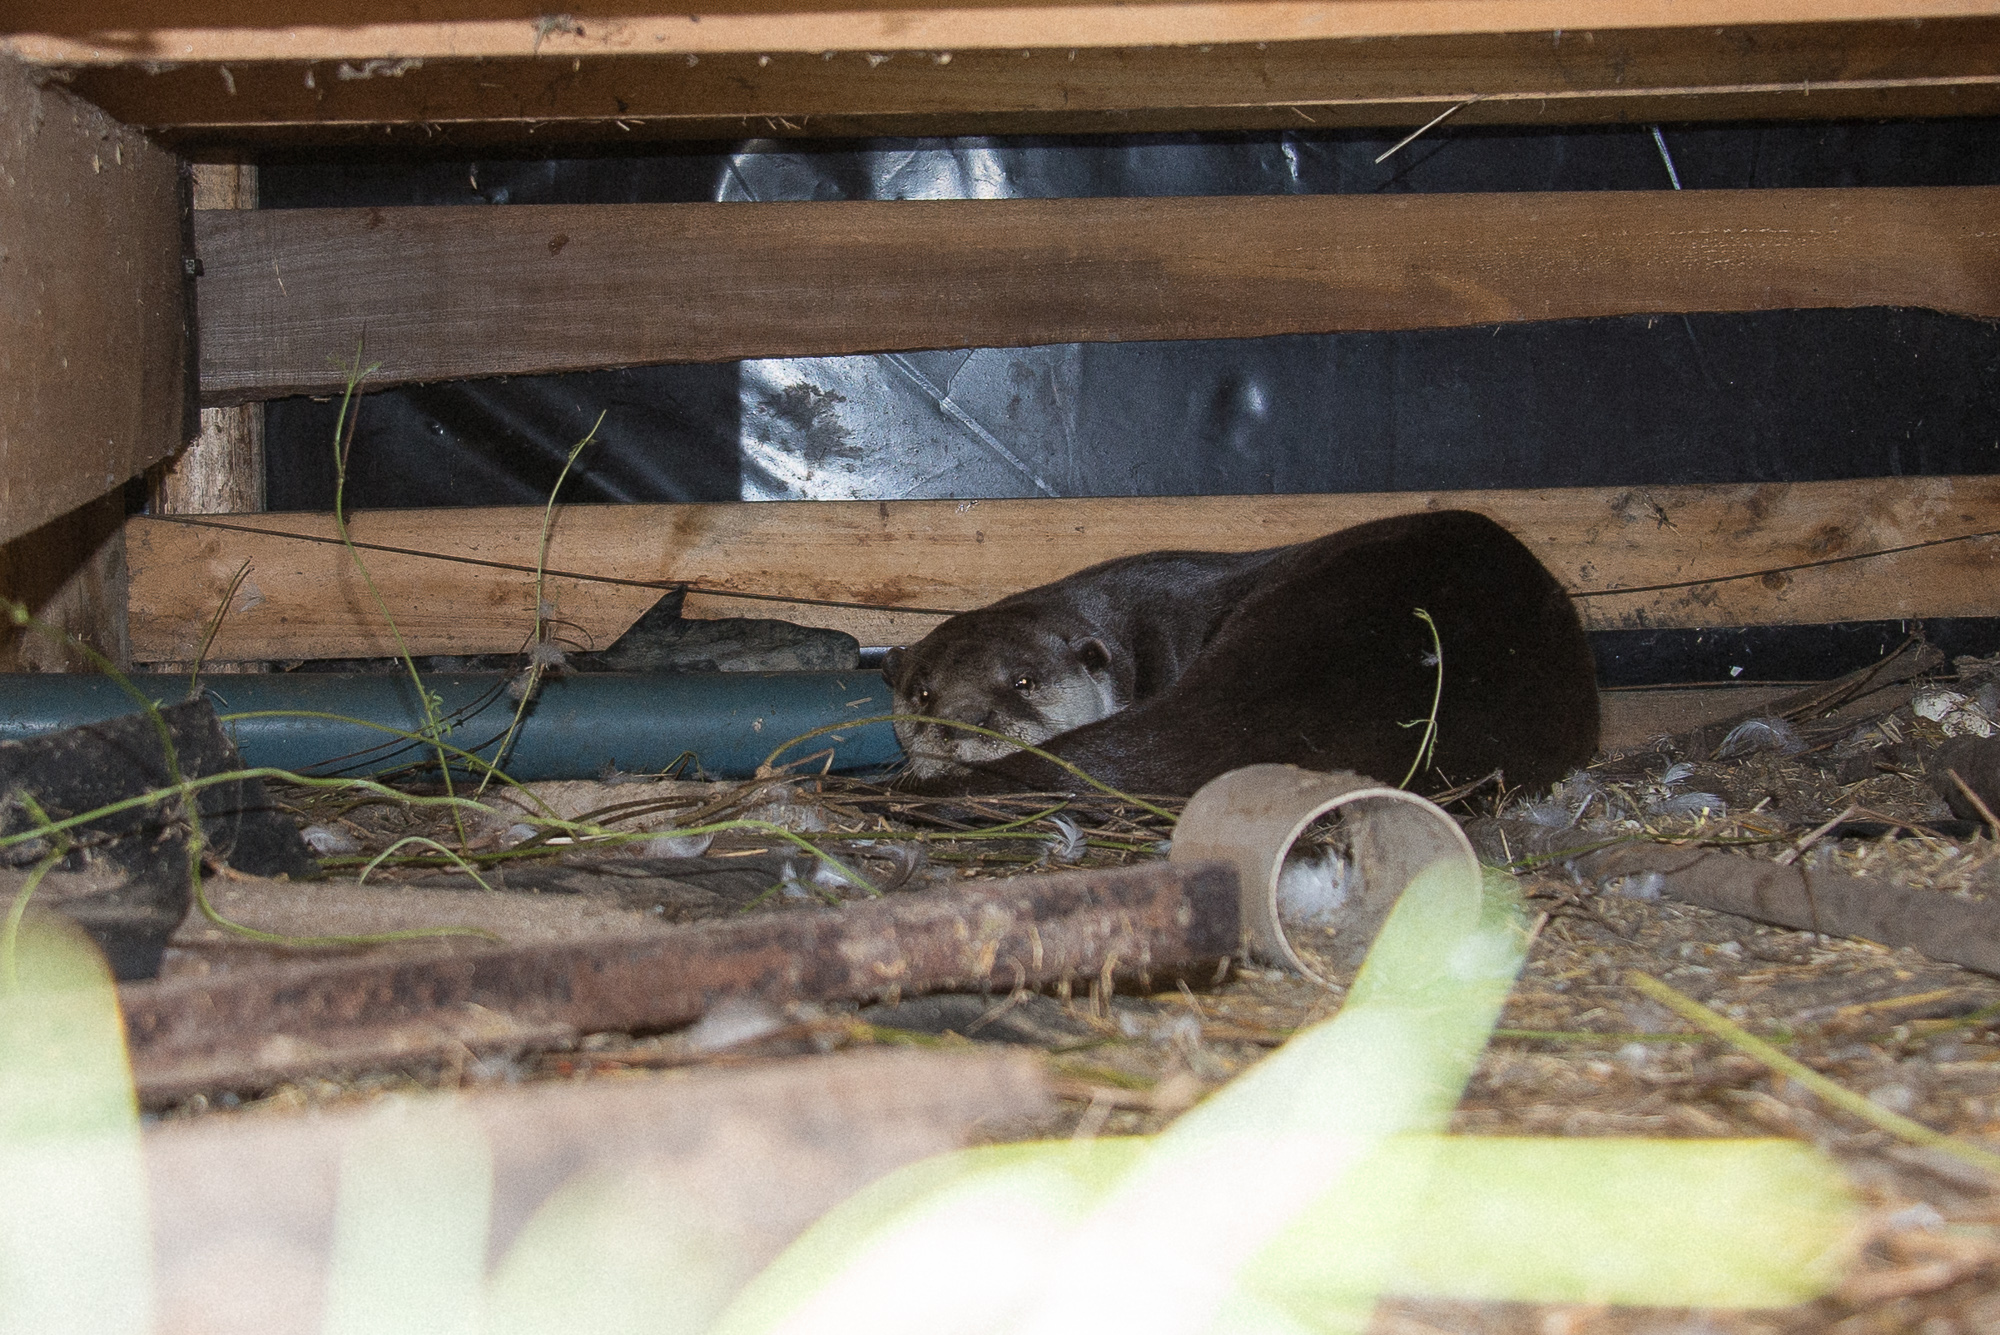 Otter that killed ducks and chickens on a neighbouring farm